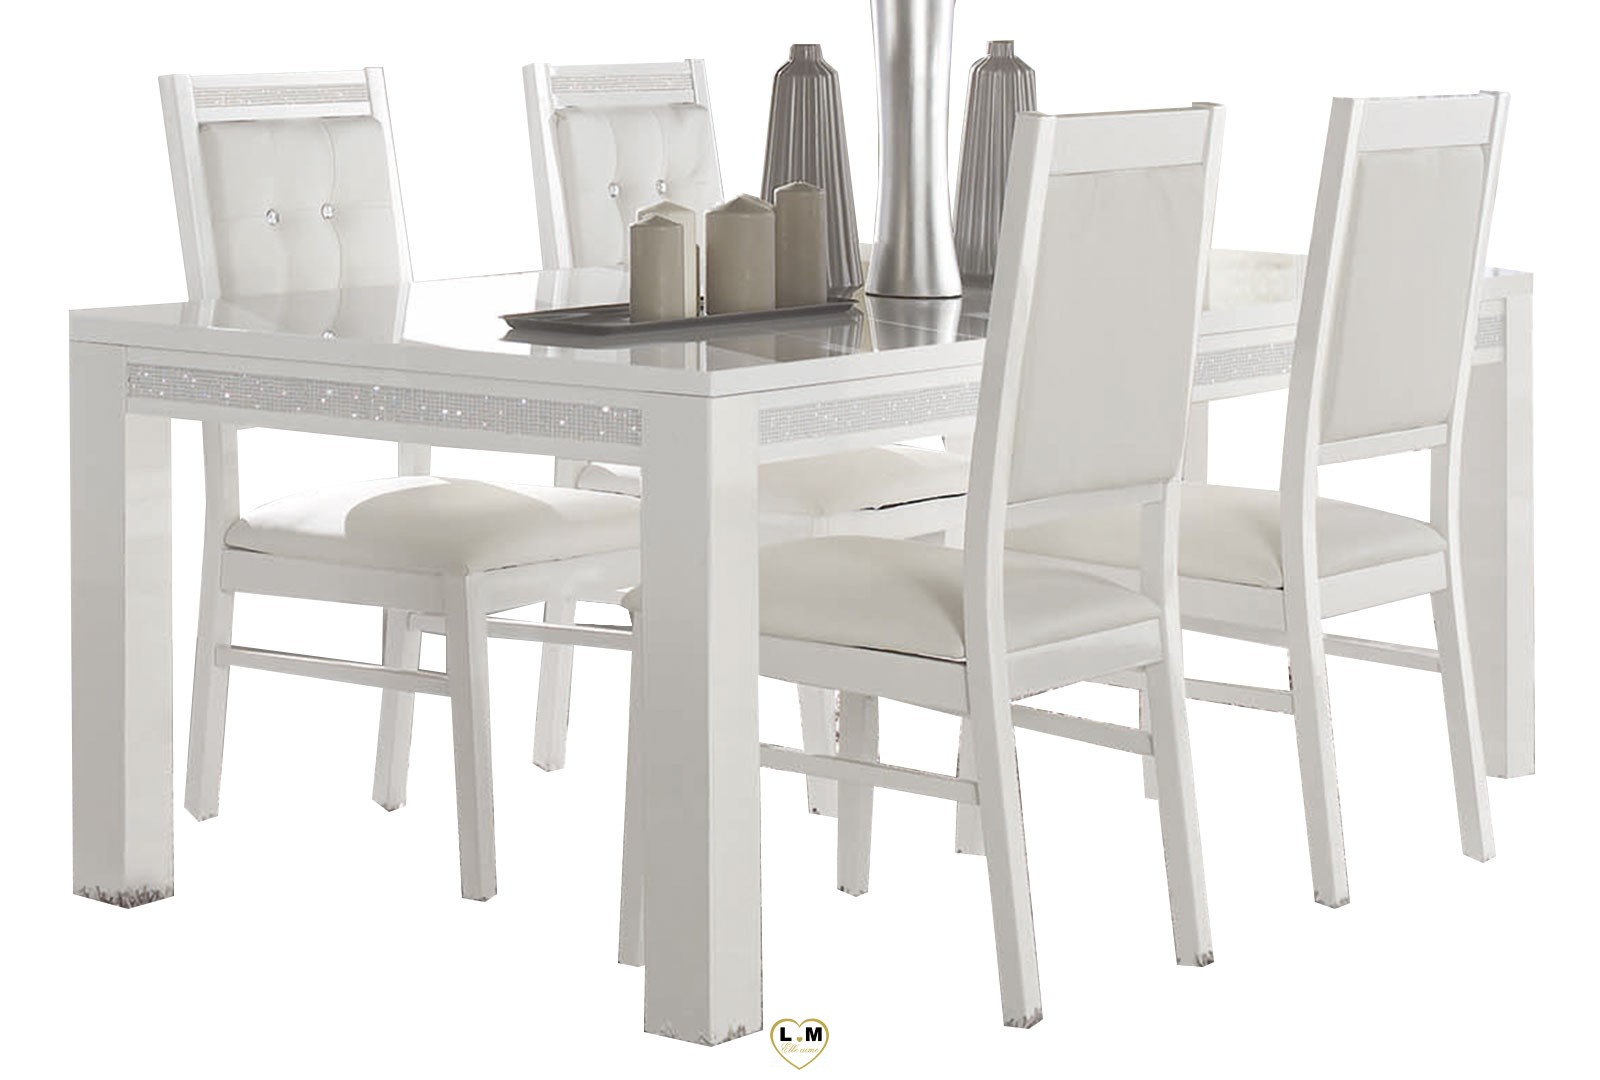 baccara laque blanc sejour salle a manger design la grande table repas lignemeuble com. Black Bedroom Furniture Sets. Home Design Ideas